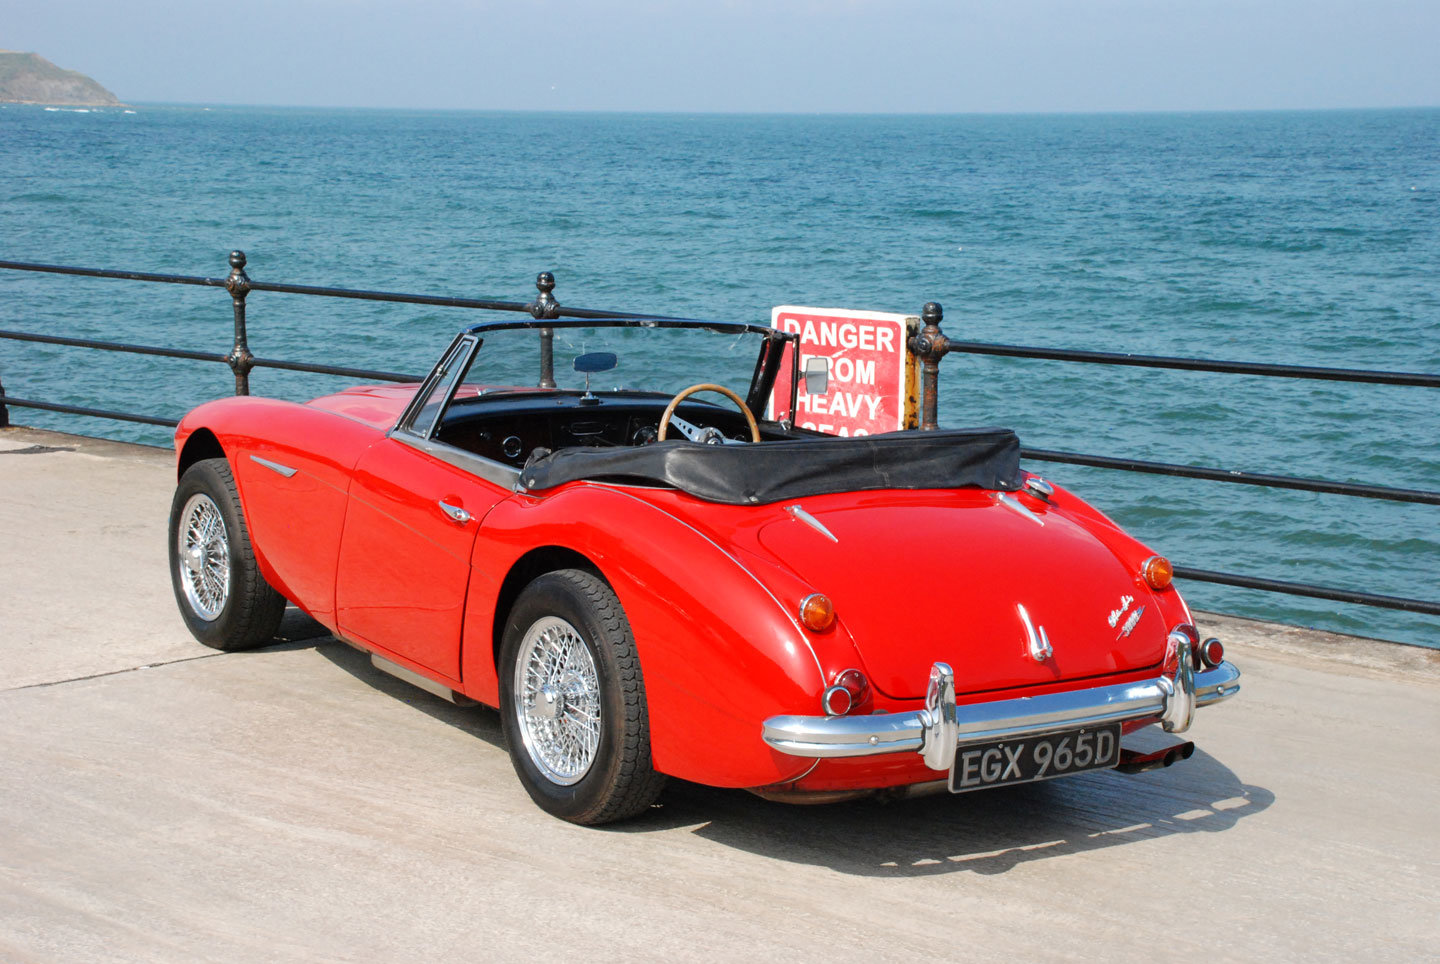 1966 Austin Healey 3000 Mk 3 - Original UK RHD Home Market Car For Sale (picture 4 of 6)